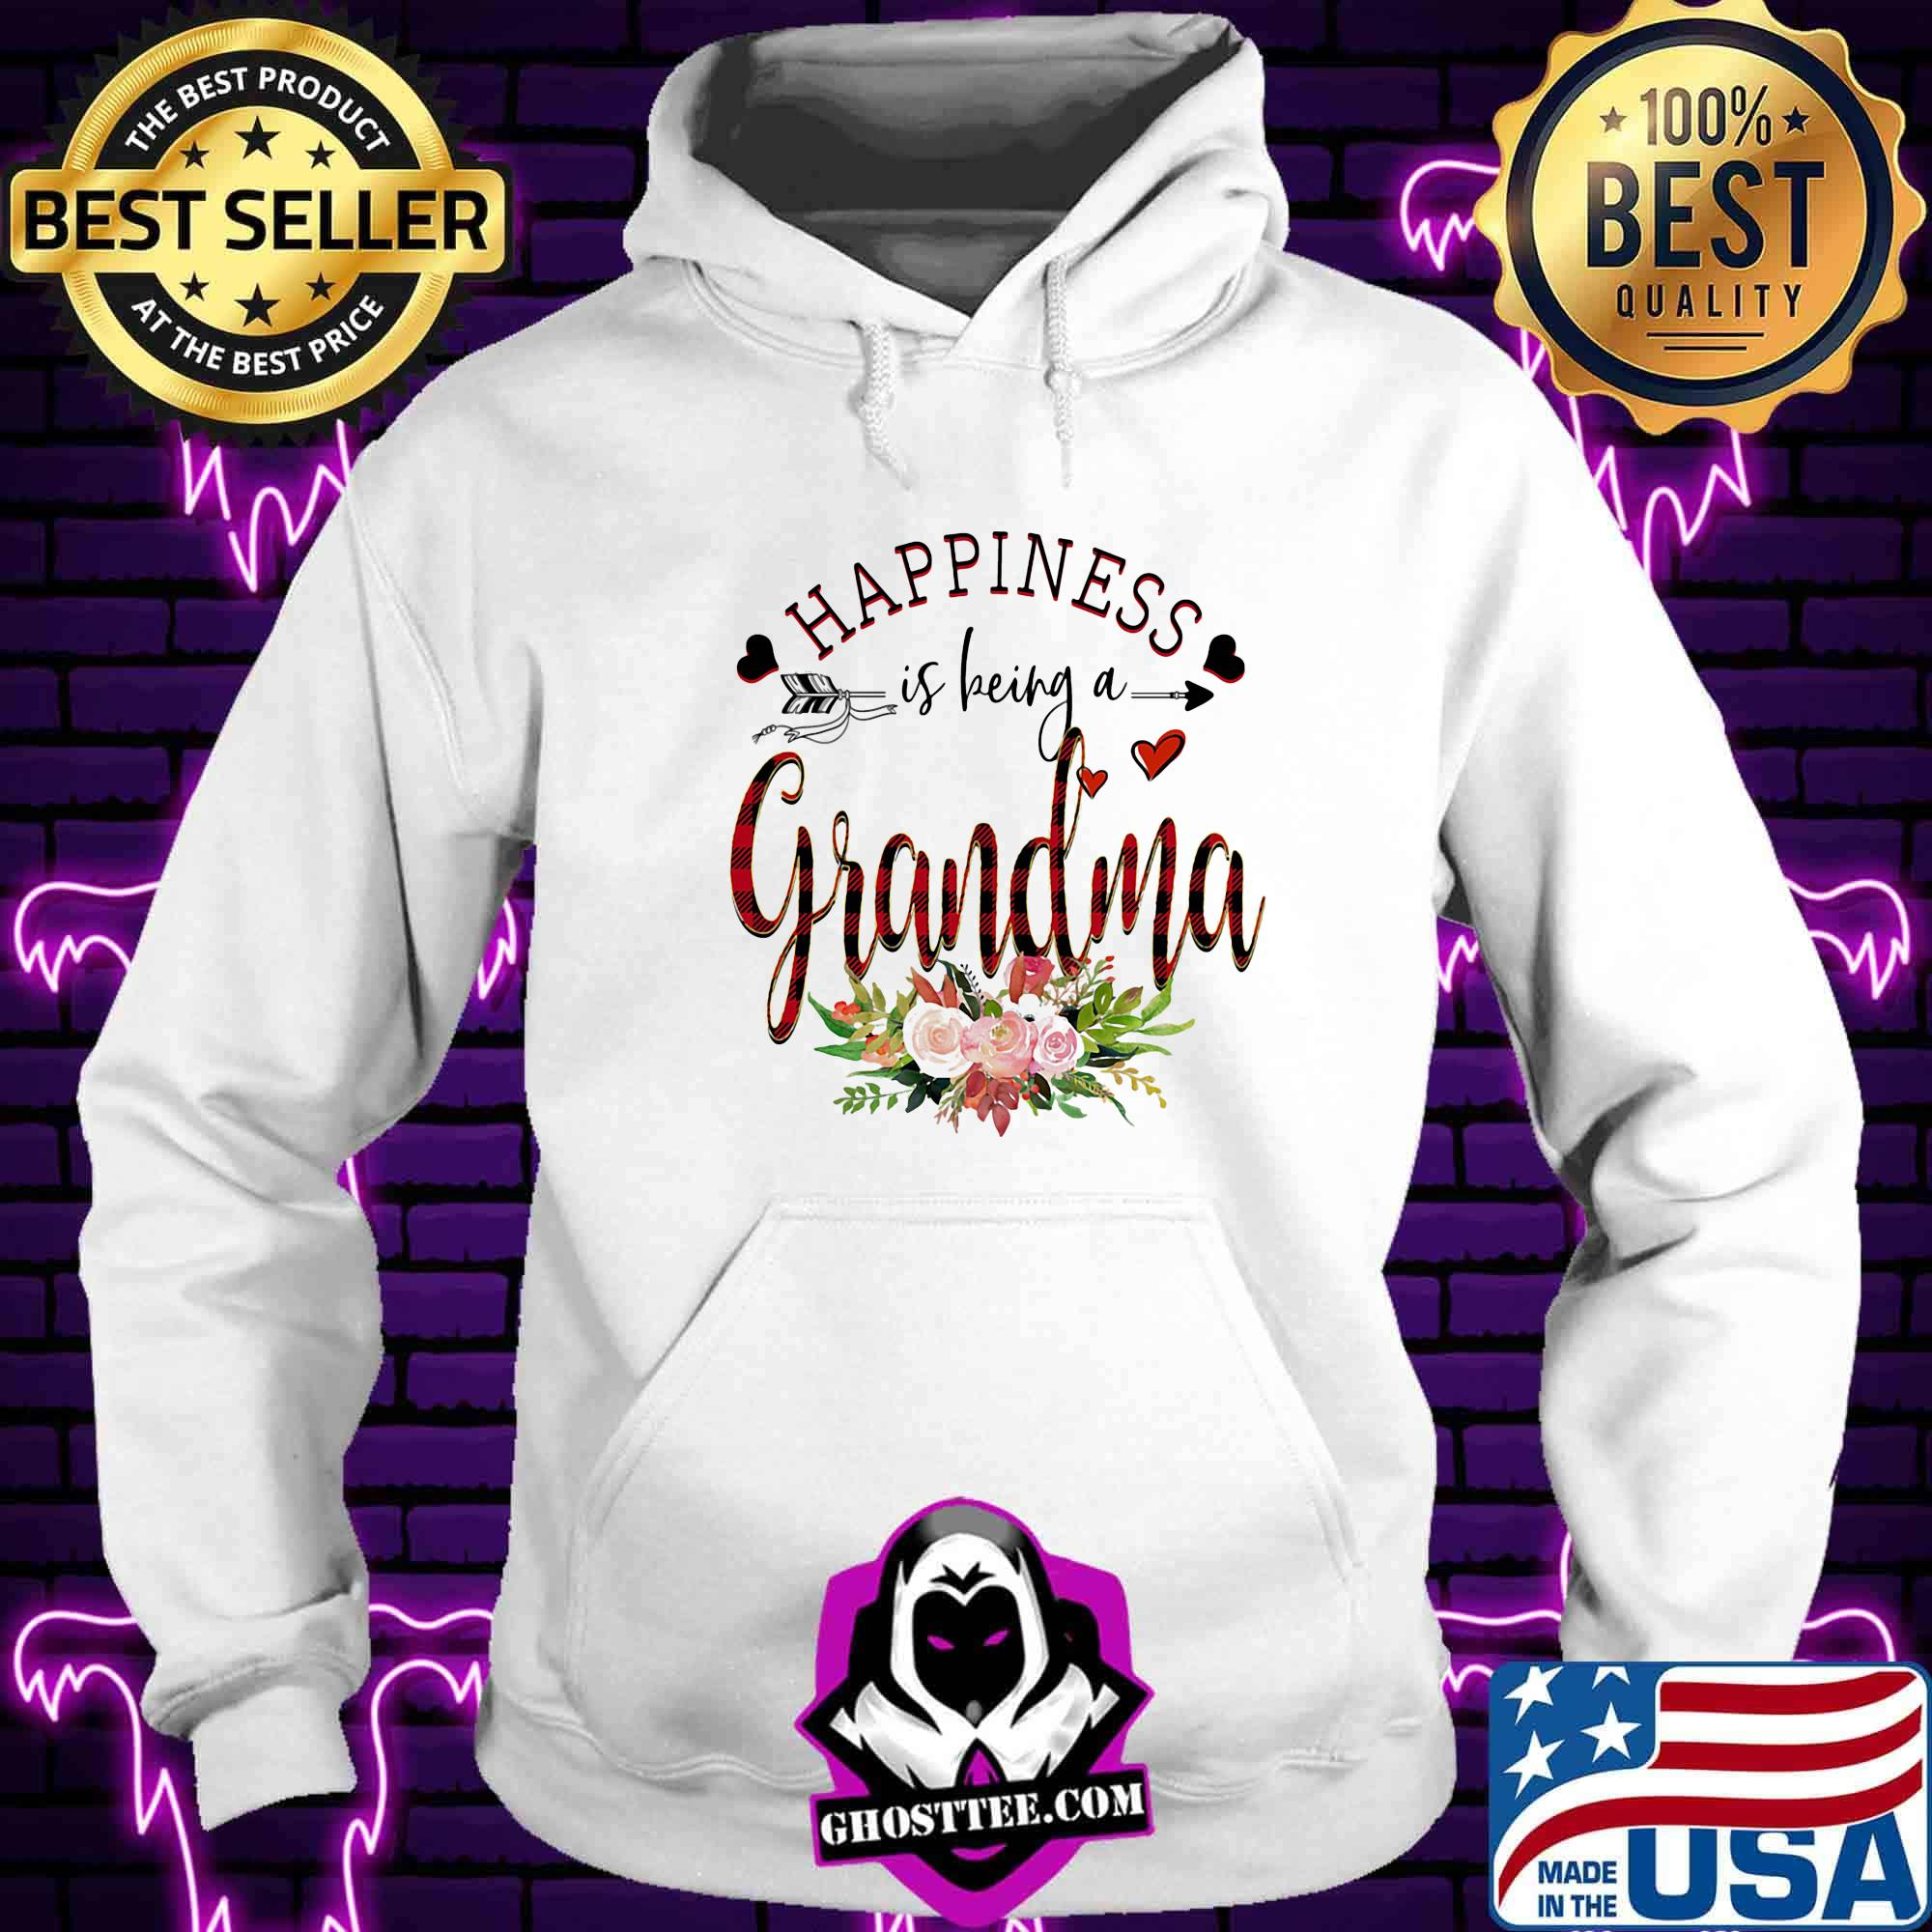 Official Blessed By God Spoiled By My Husband Protected By Both Shirt Hoodie Sweater Longsleeve T Shirt